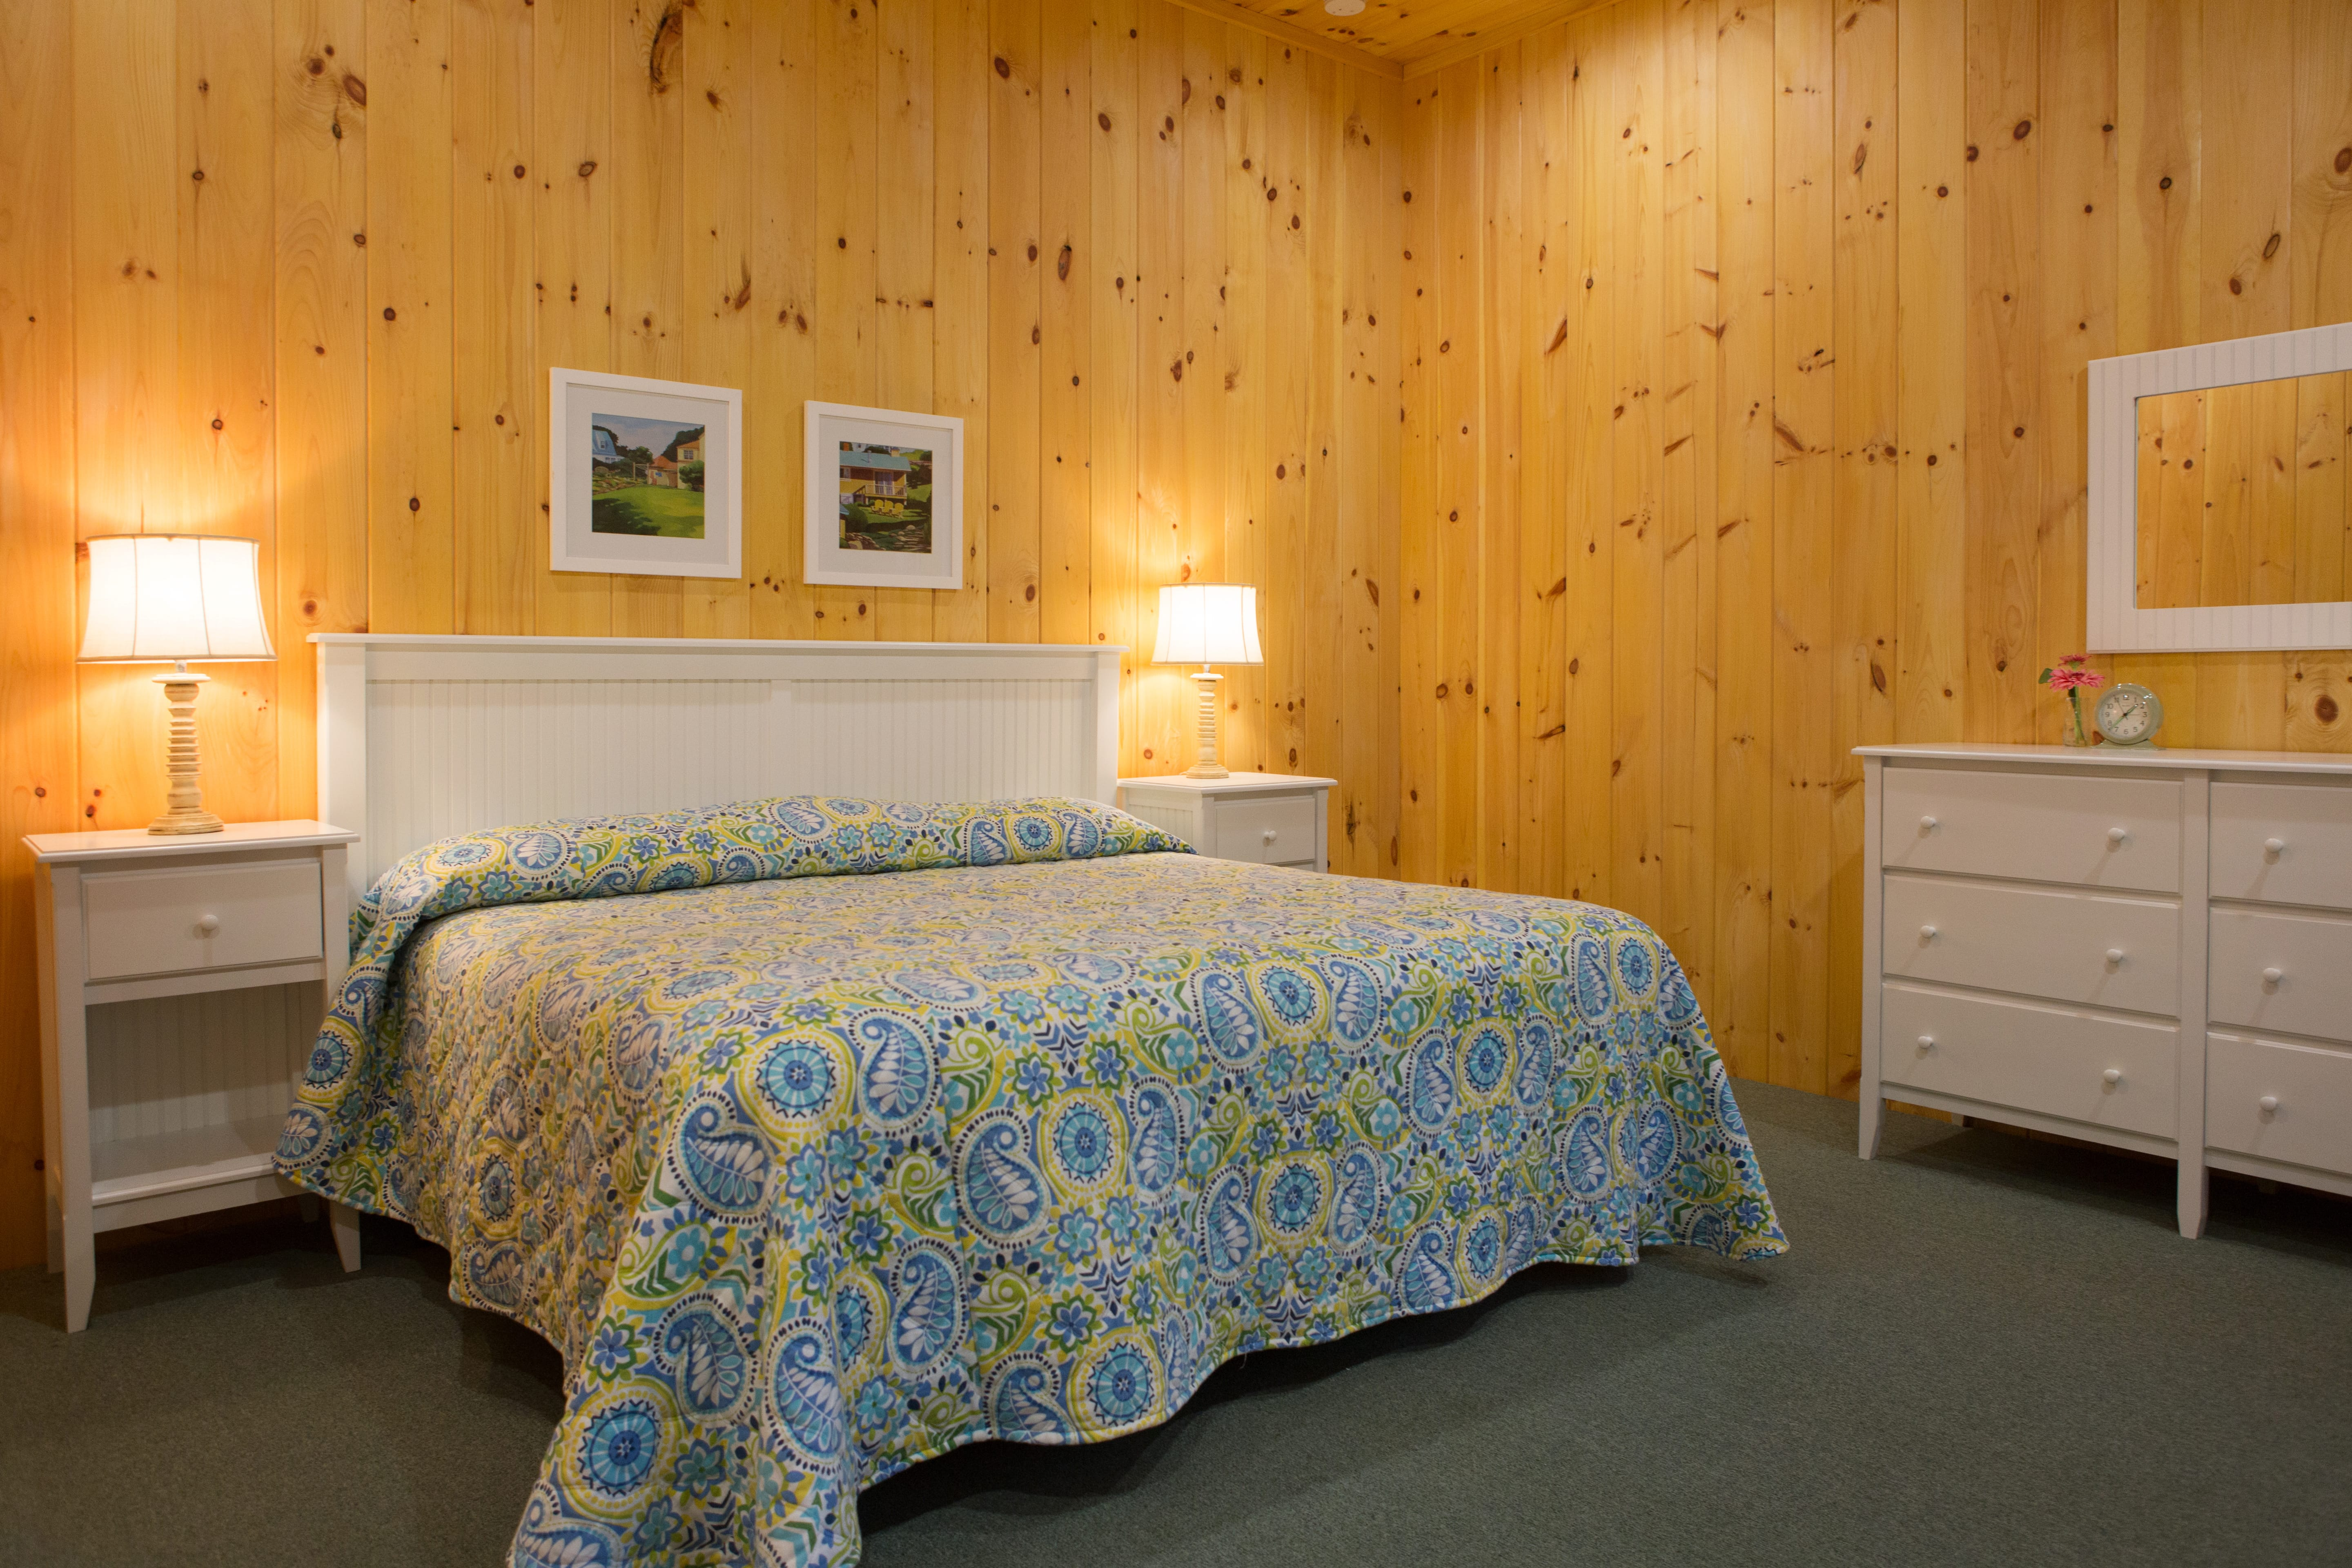 inside of lodge room showing bed